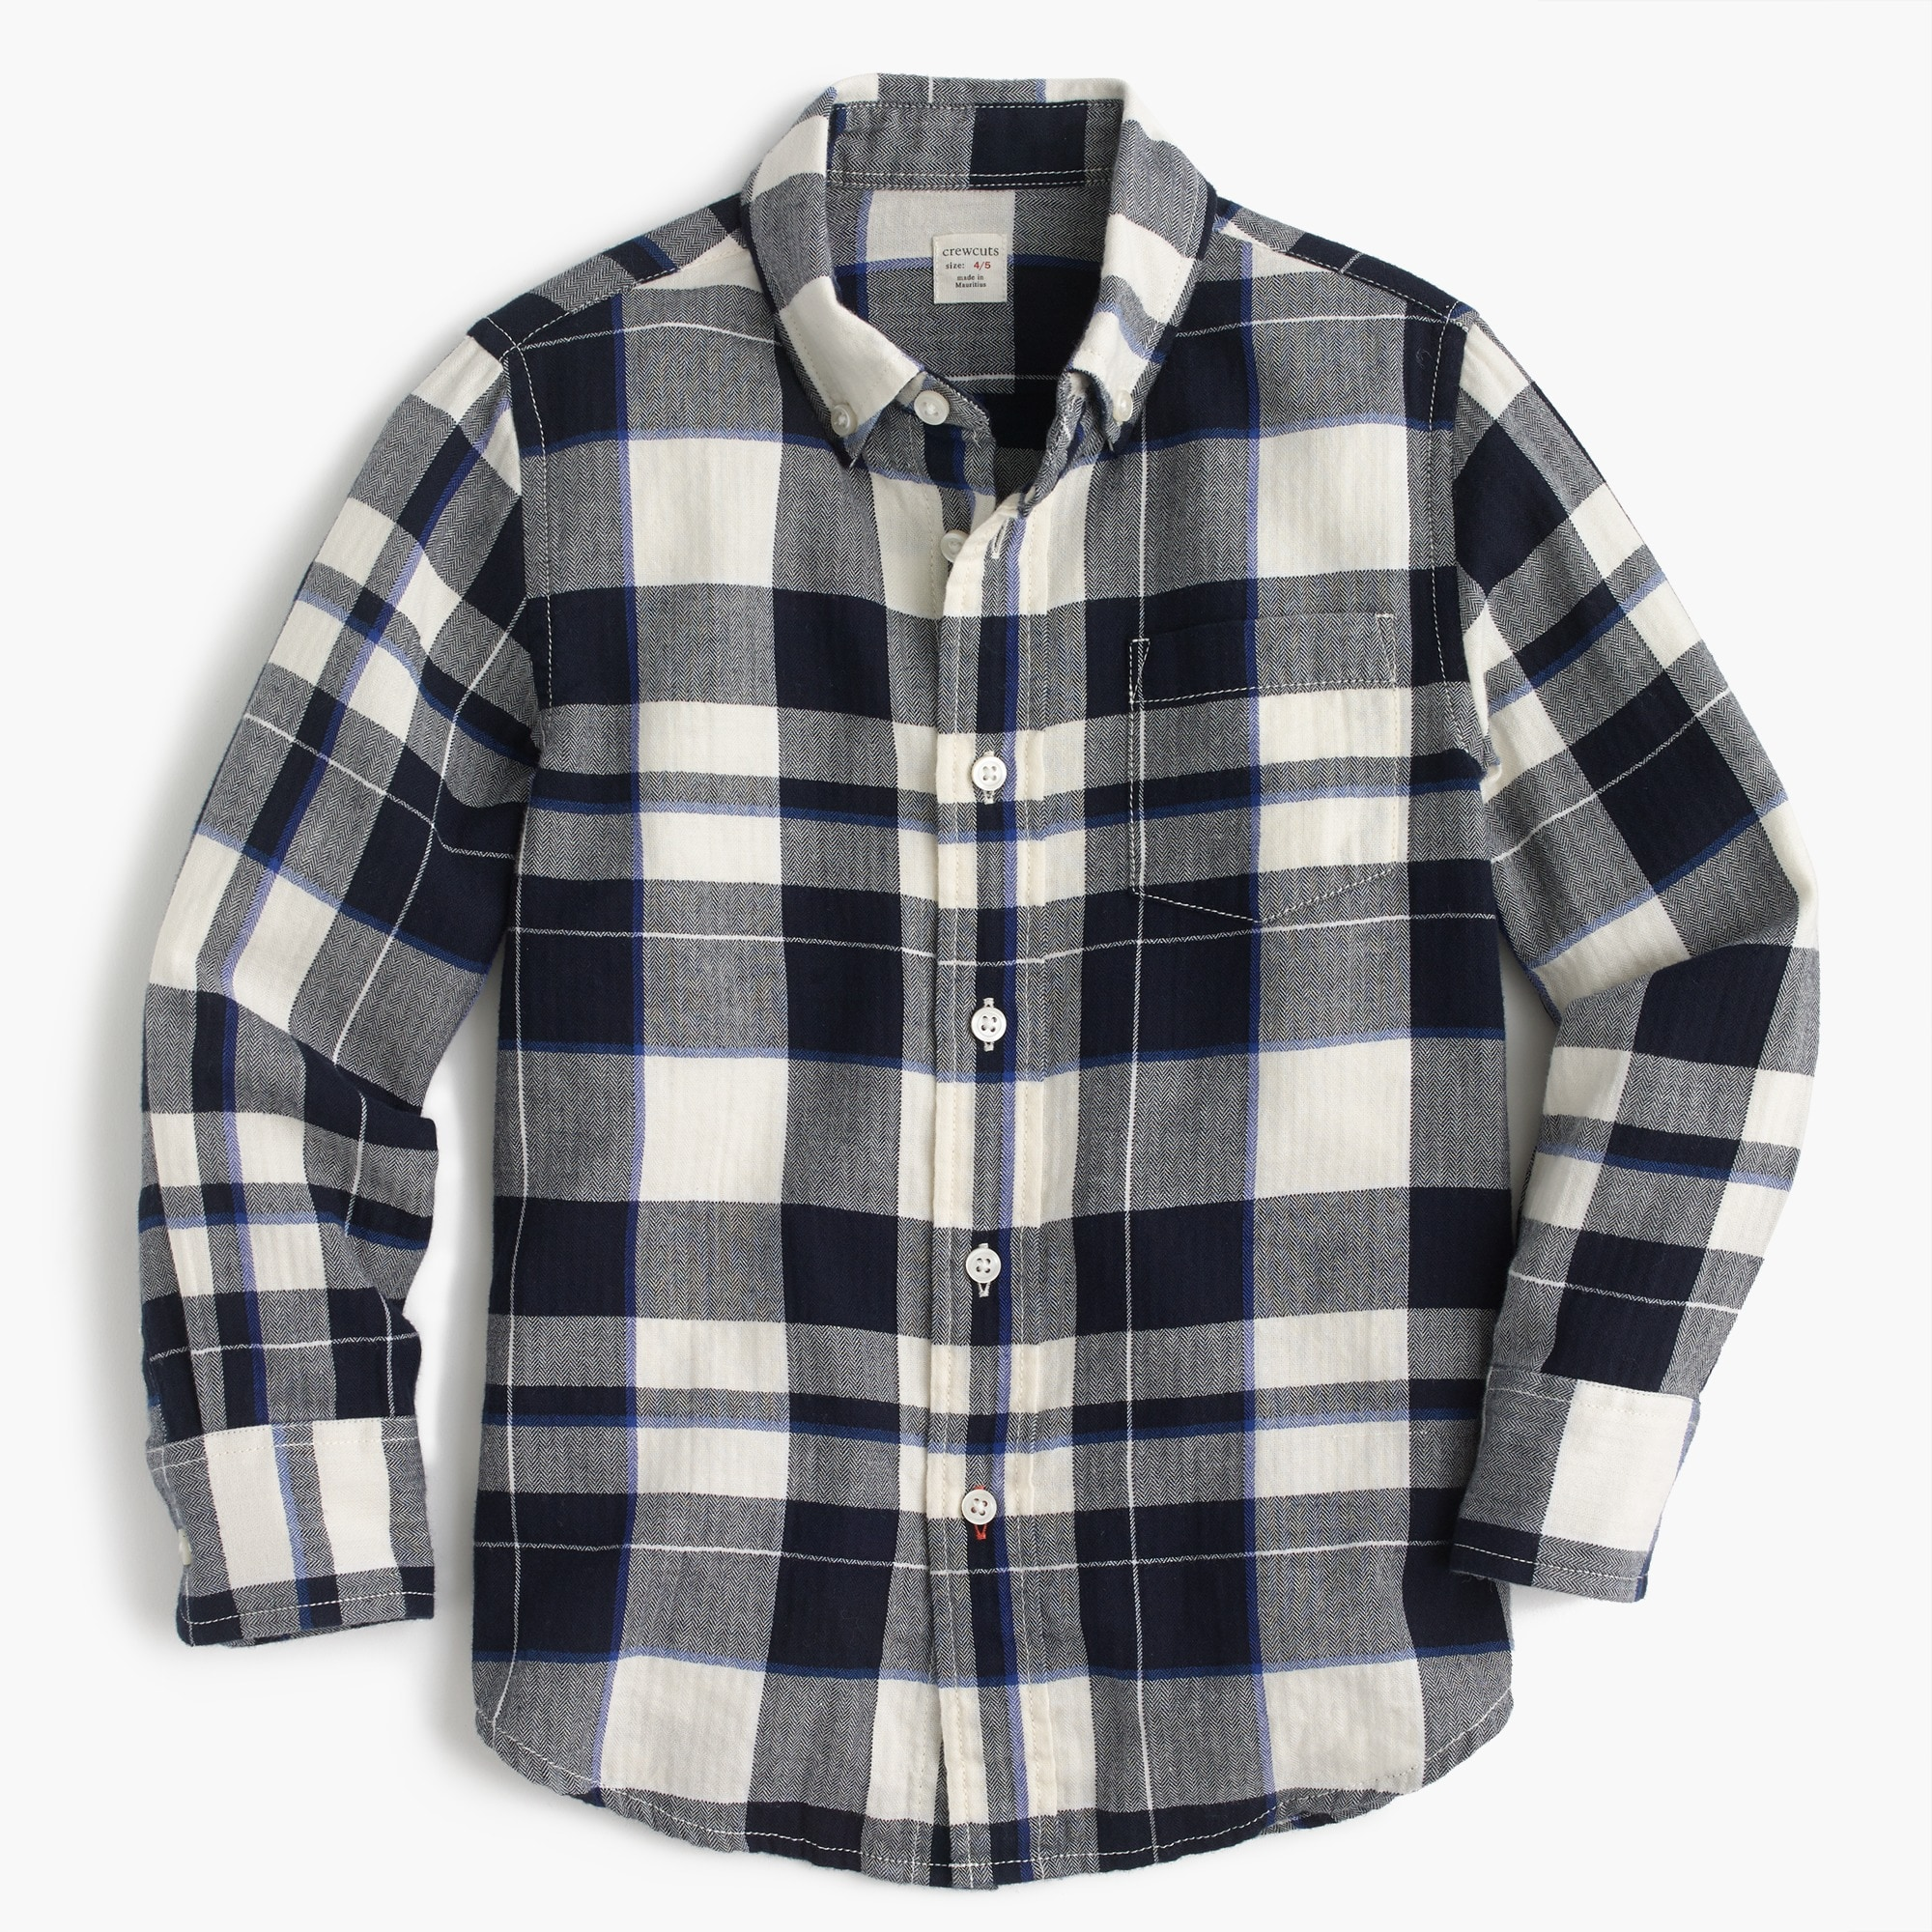 Image 1 for Kids' lightweight flannel shirt in navy plaid